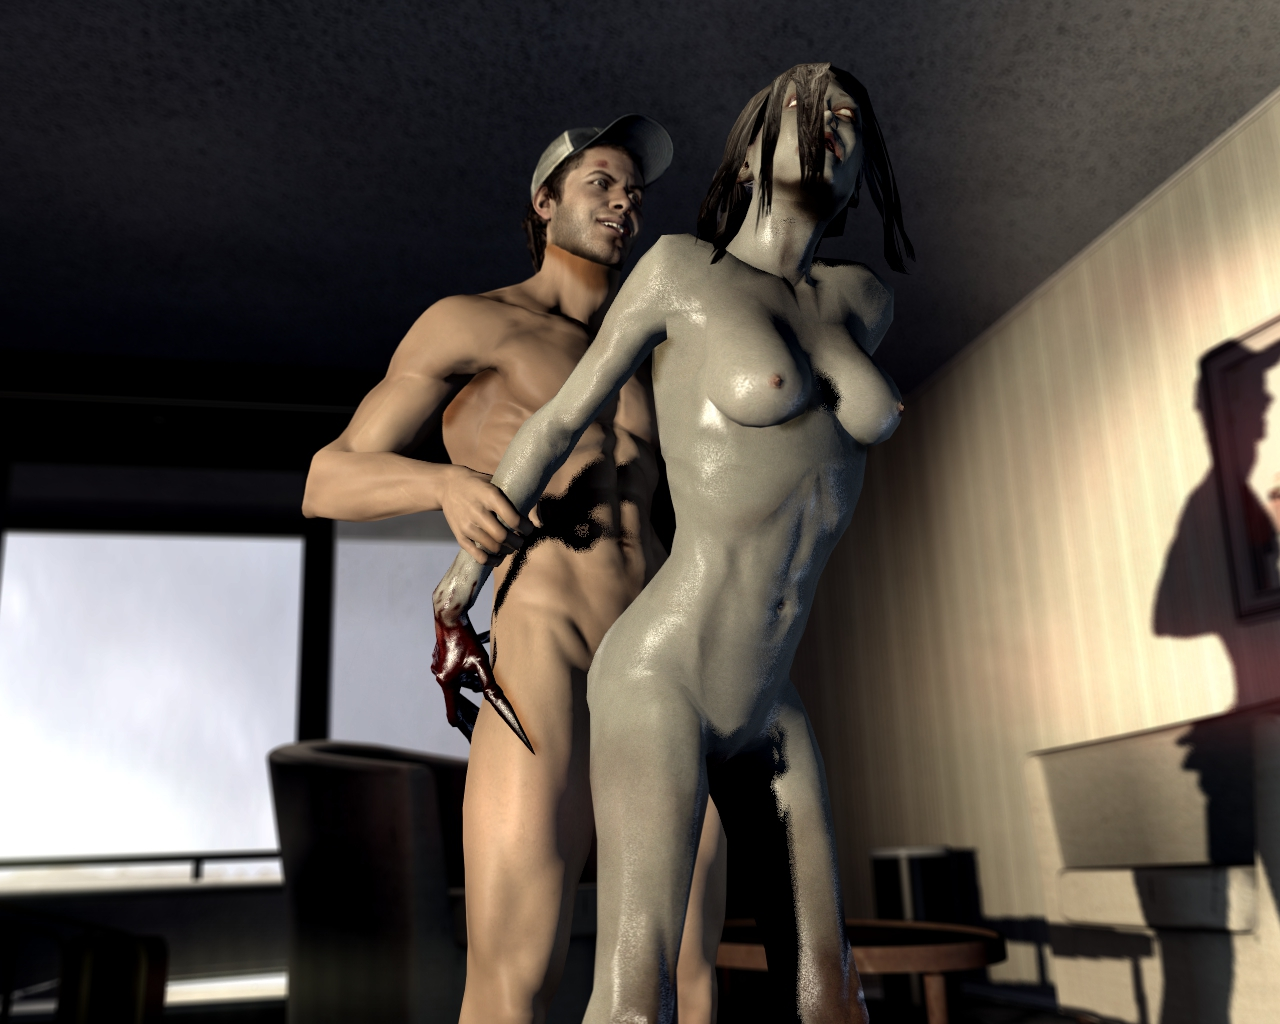 L4d witch sex porn fre video nsfw picture